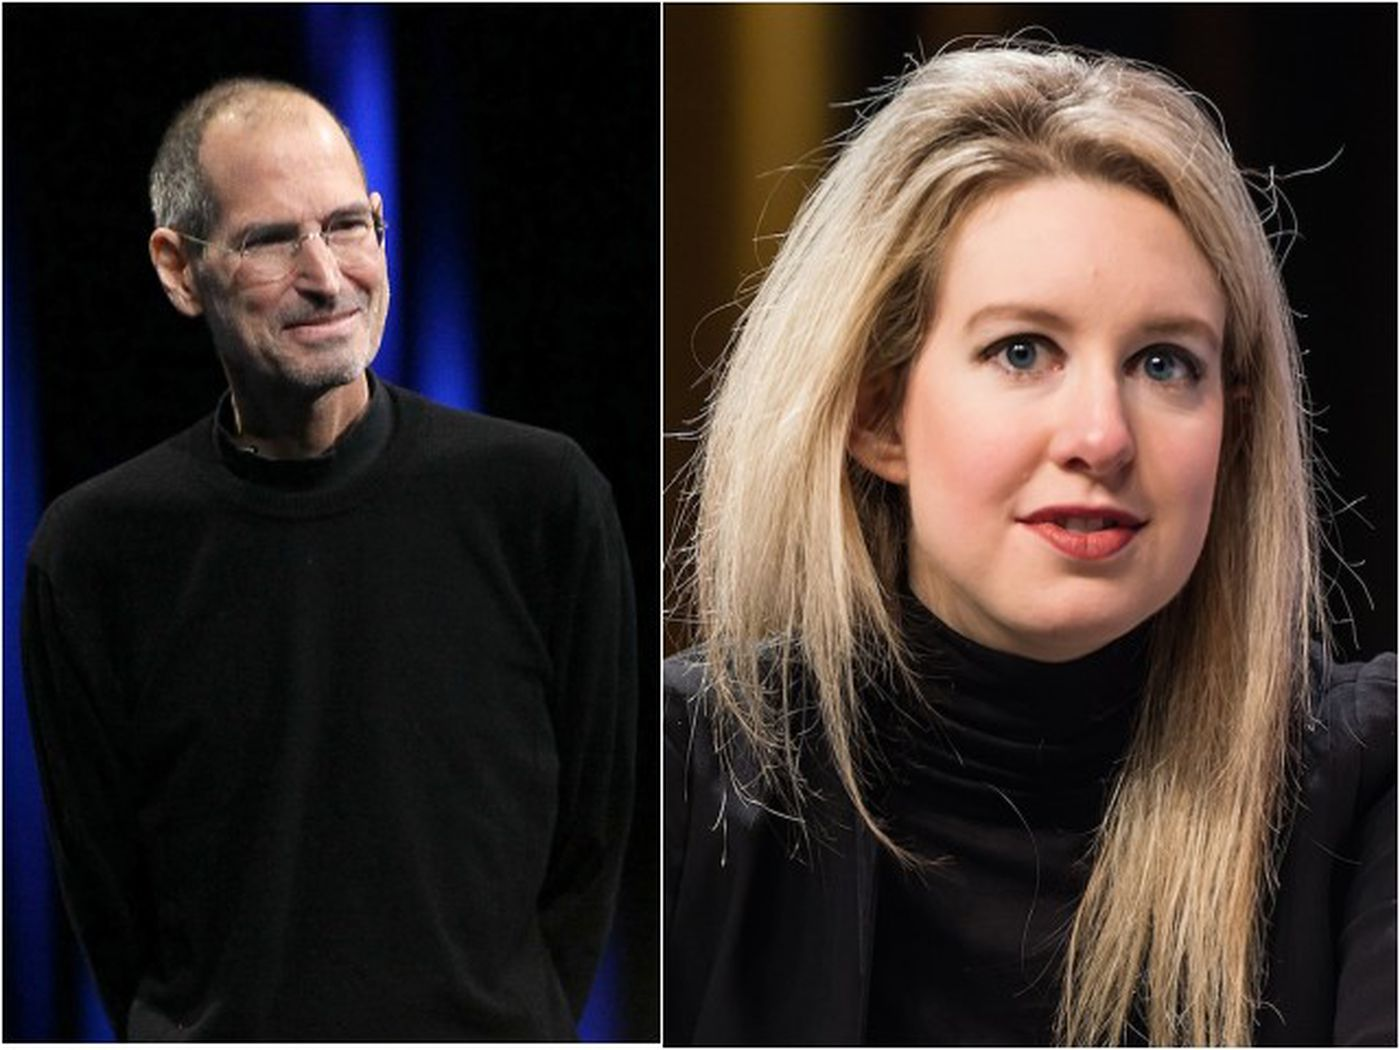 Elizabeth Holmes was obsessed with impersonating Steve Jobs. (Credit: Vox)